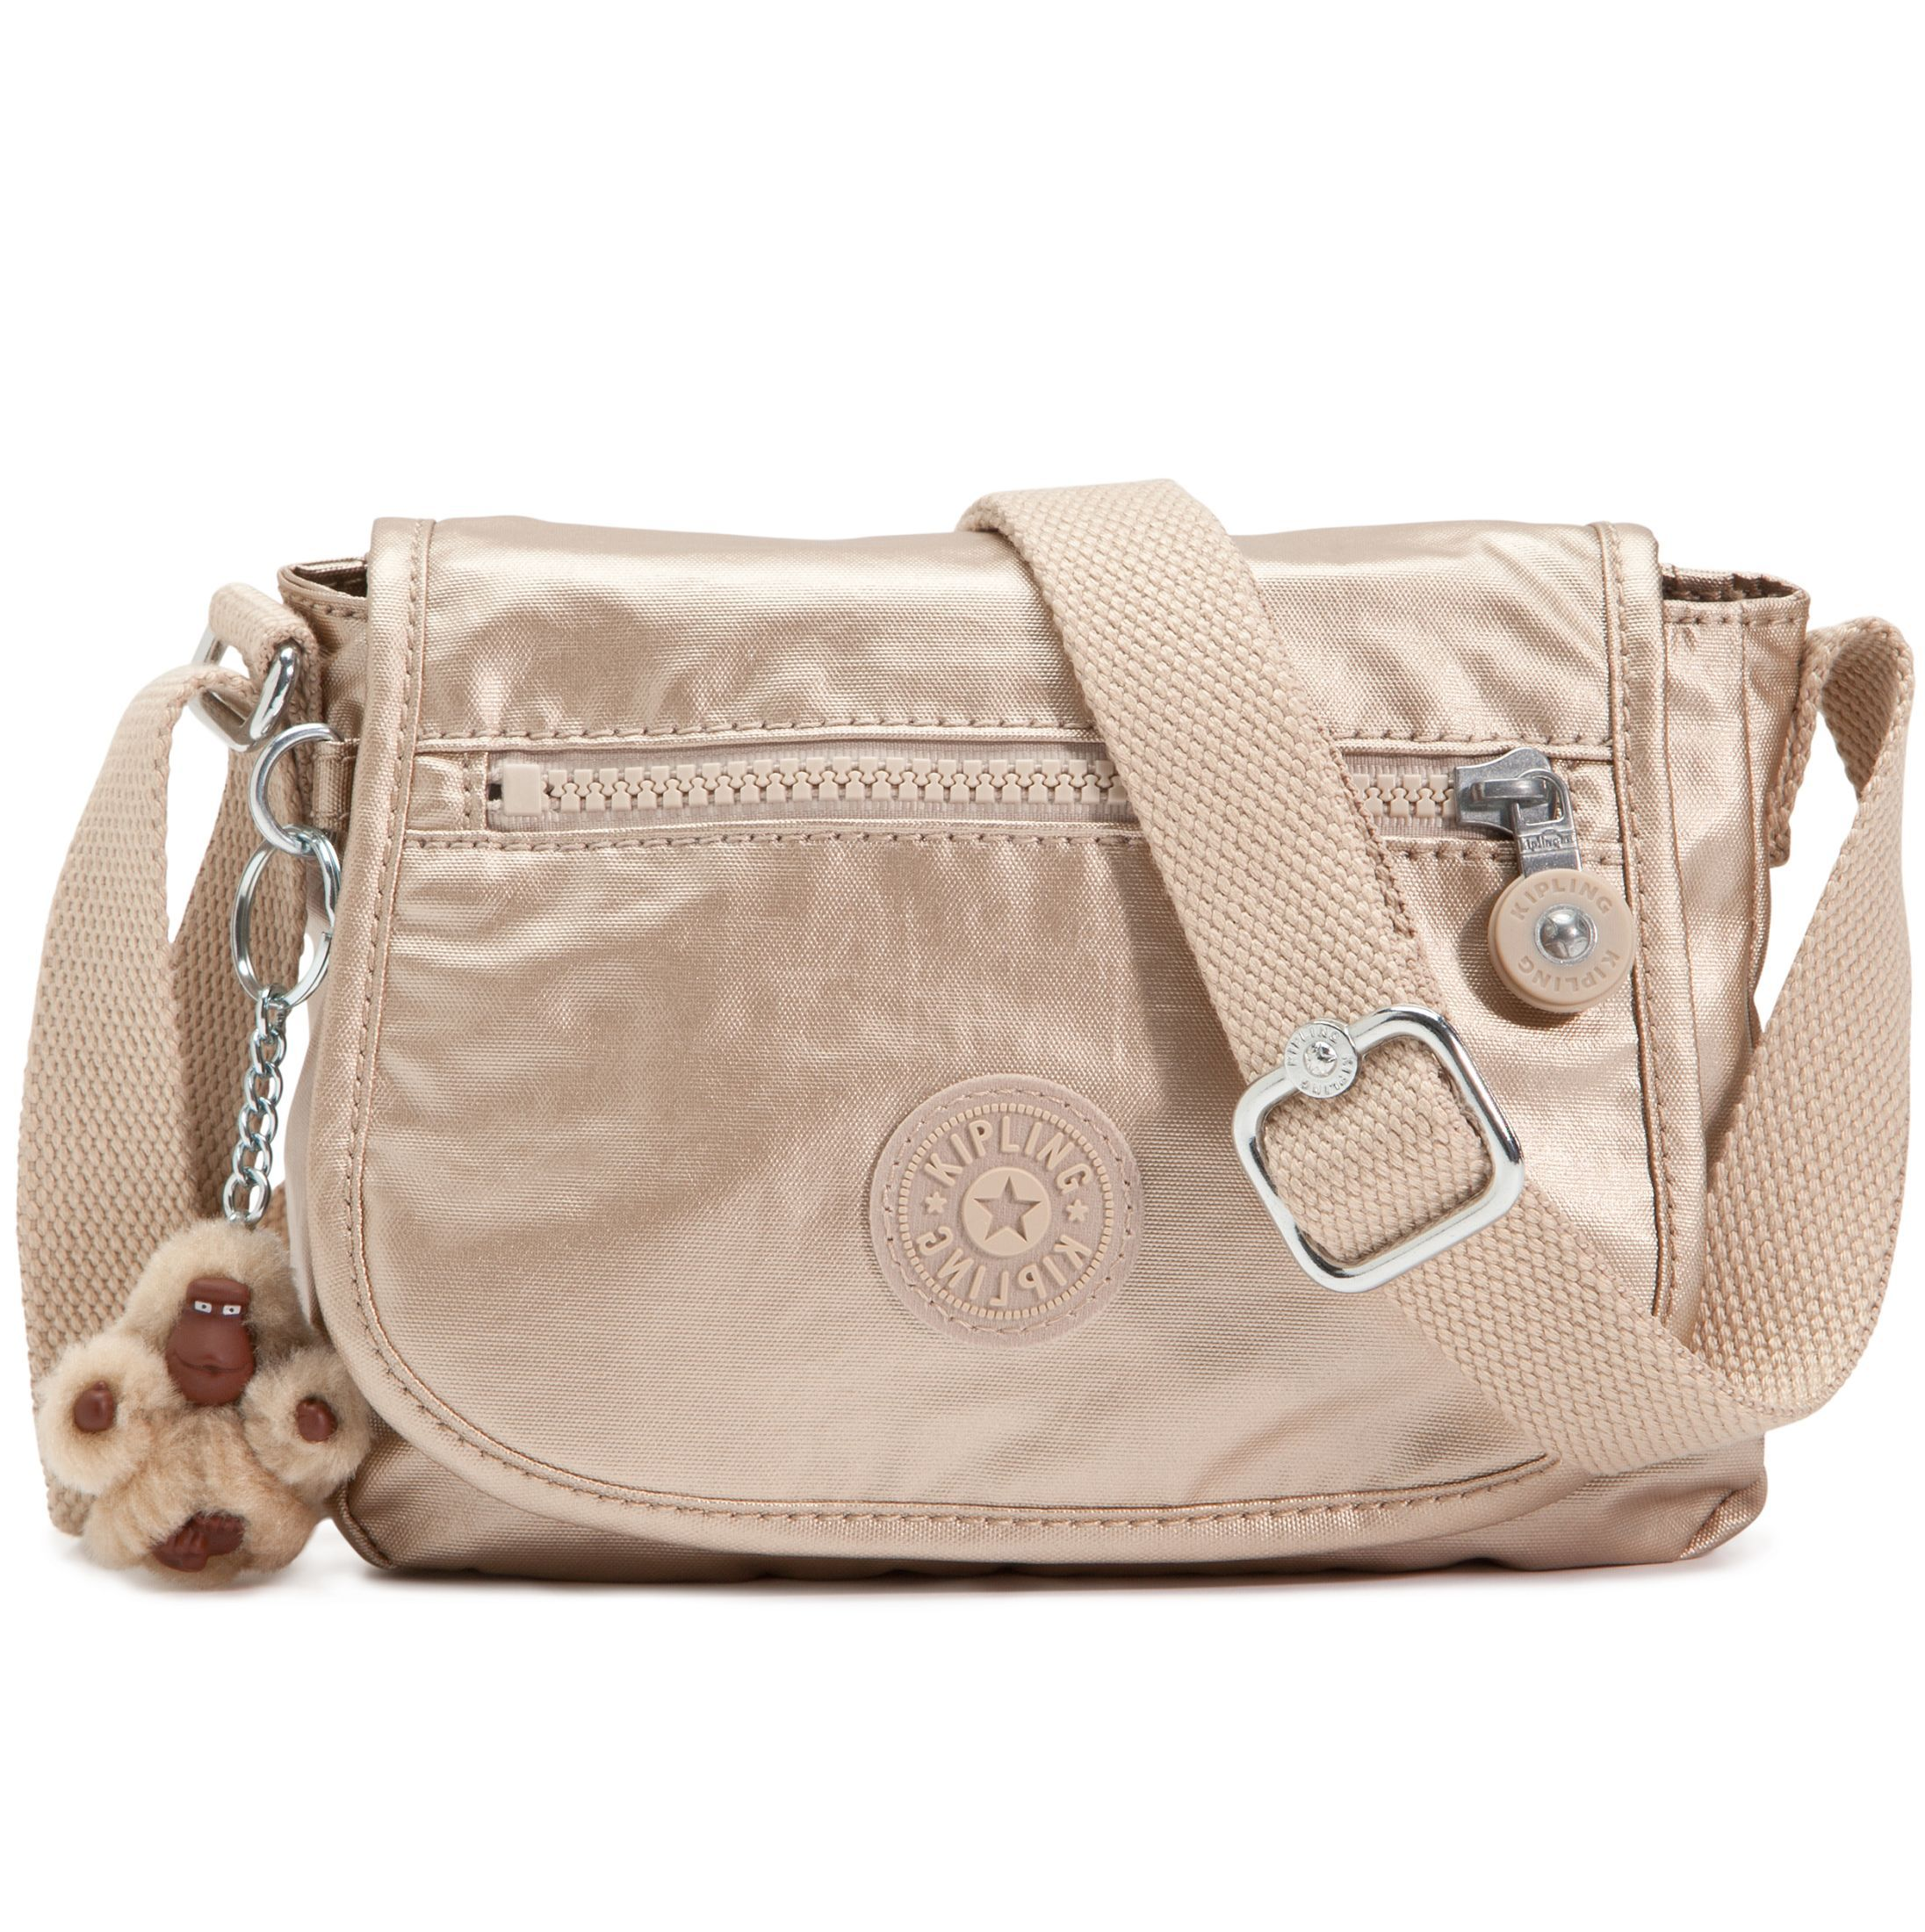 3c56db567 Kipling Sabian Crossbody Metallic Mini Bag | Carteras em 2019 ...